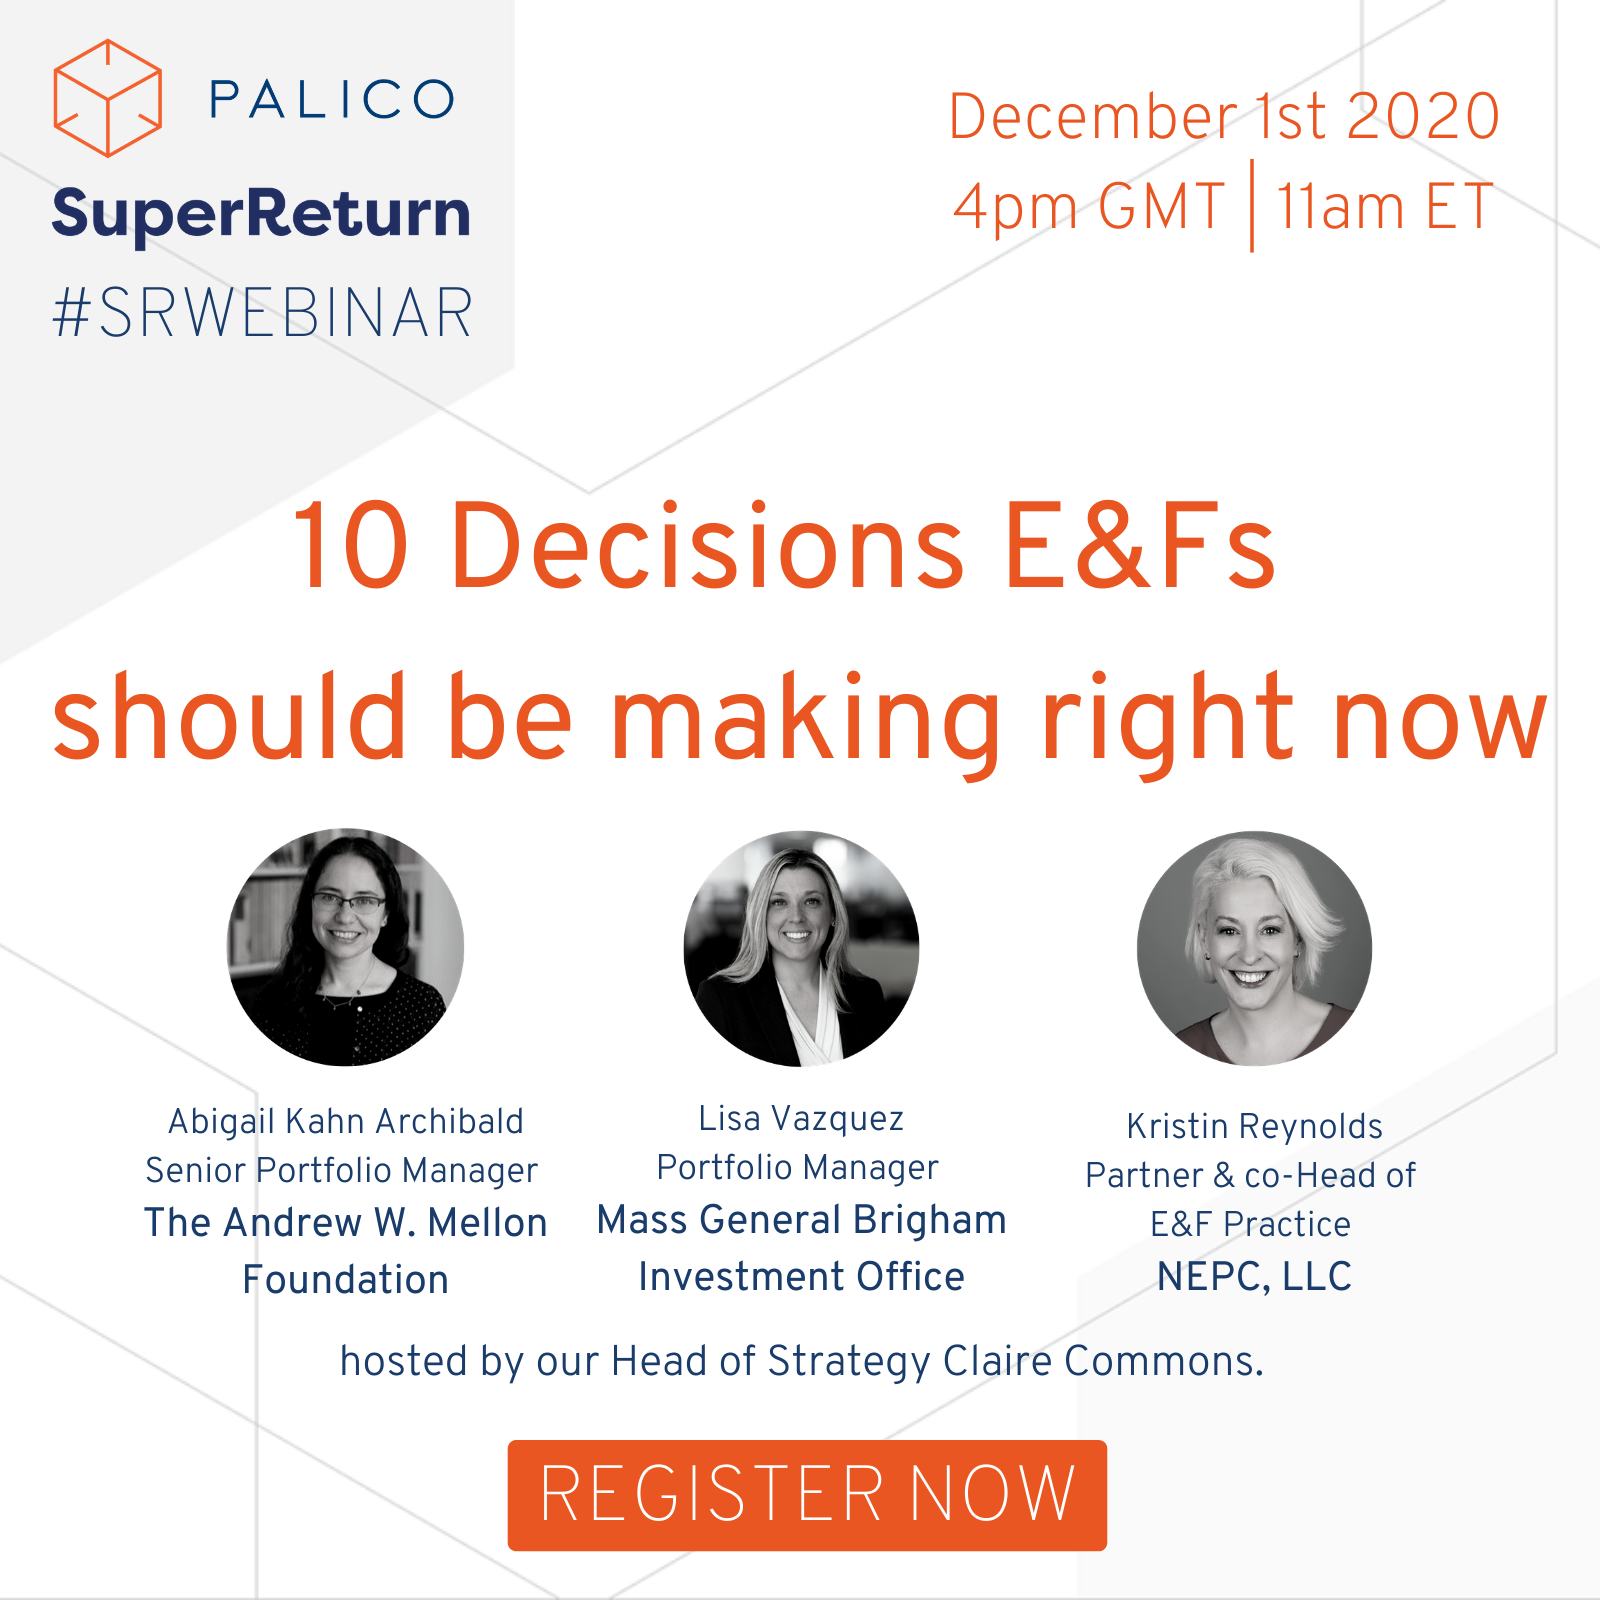 10 Decisions E&Fs should be making right now (2)